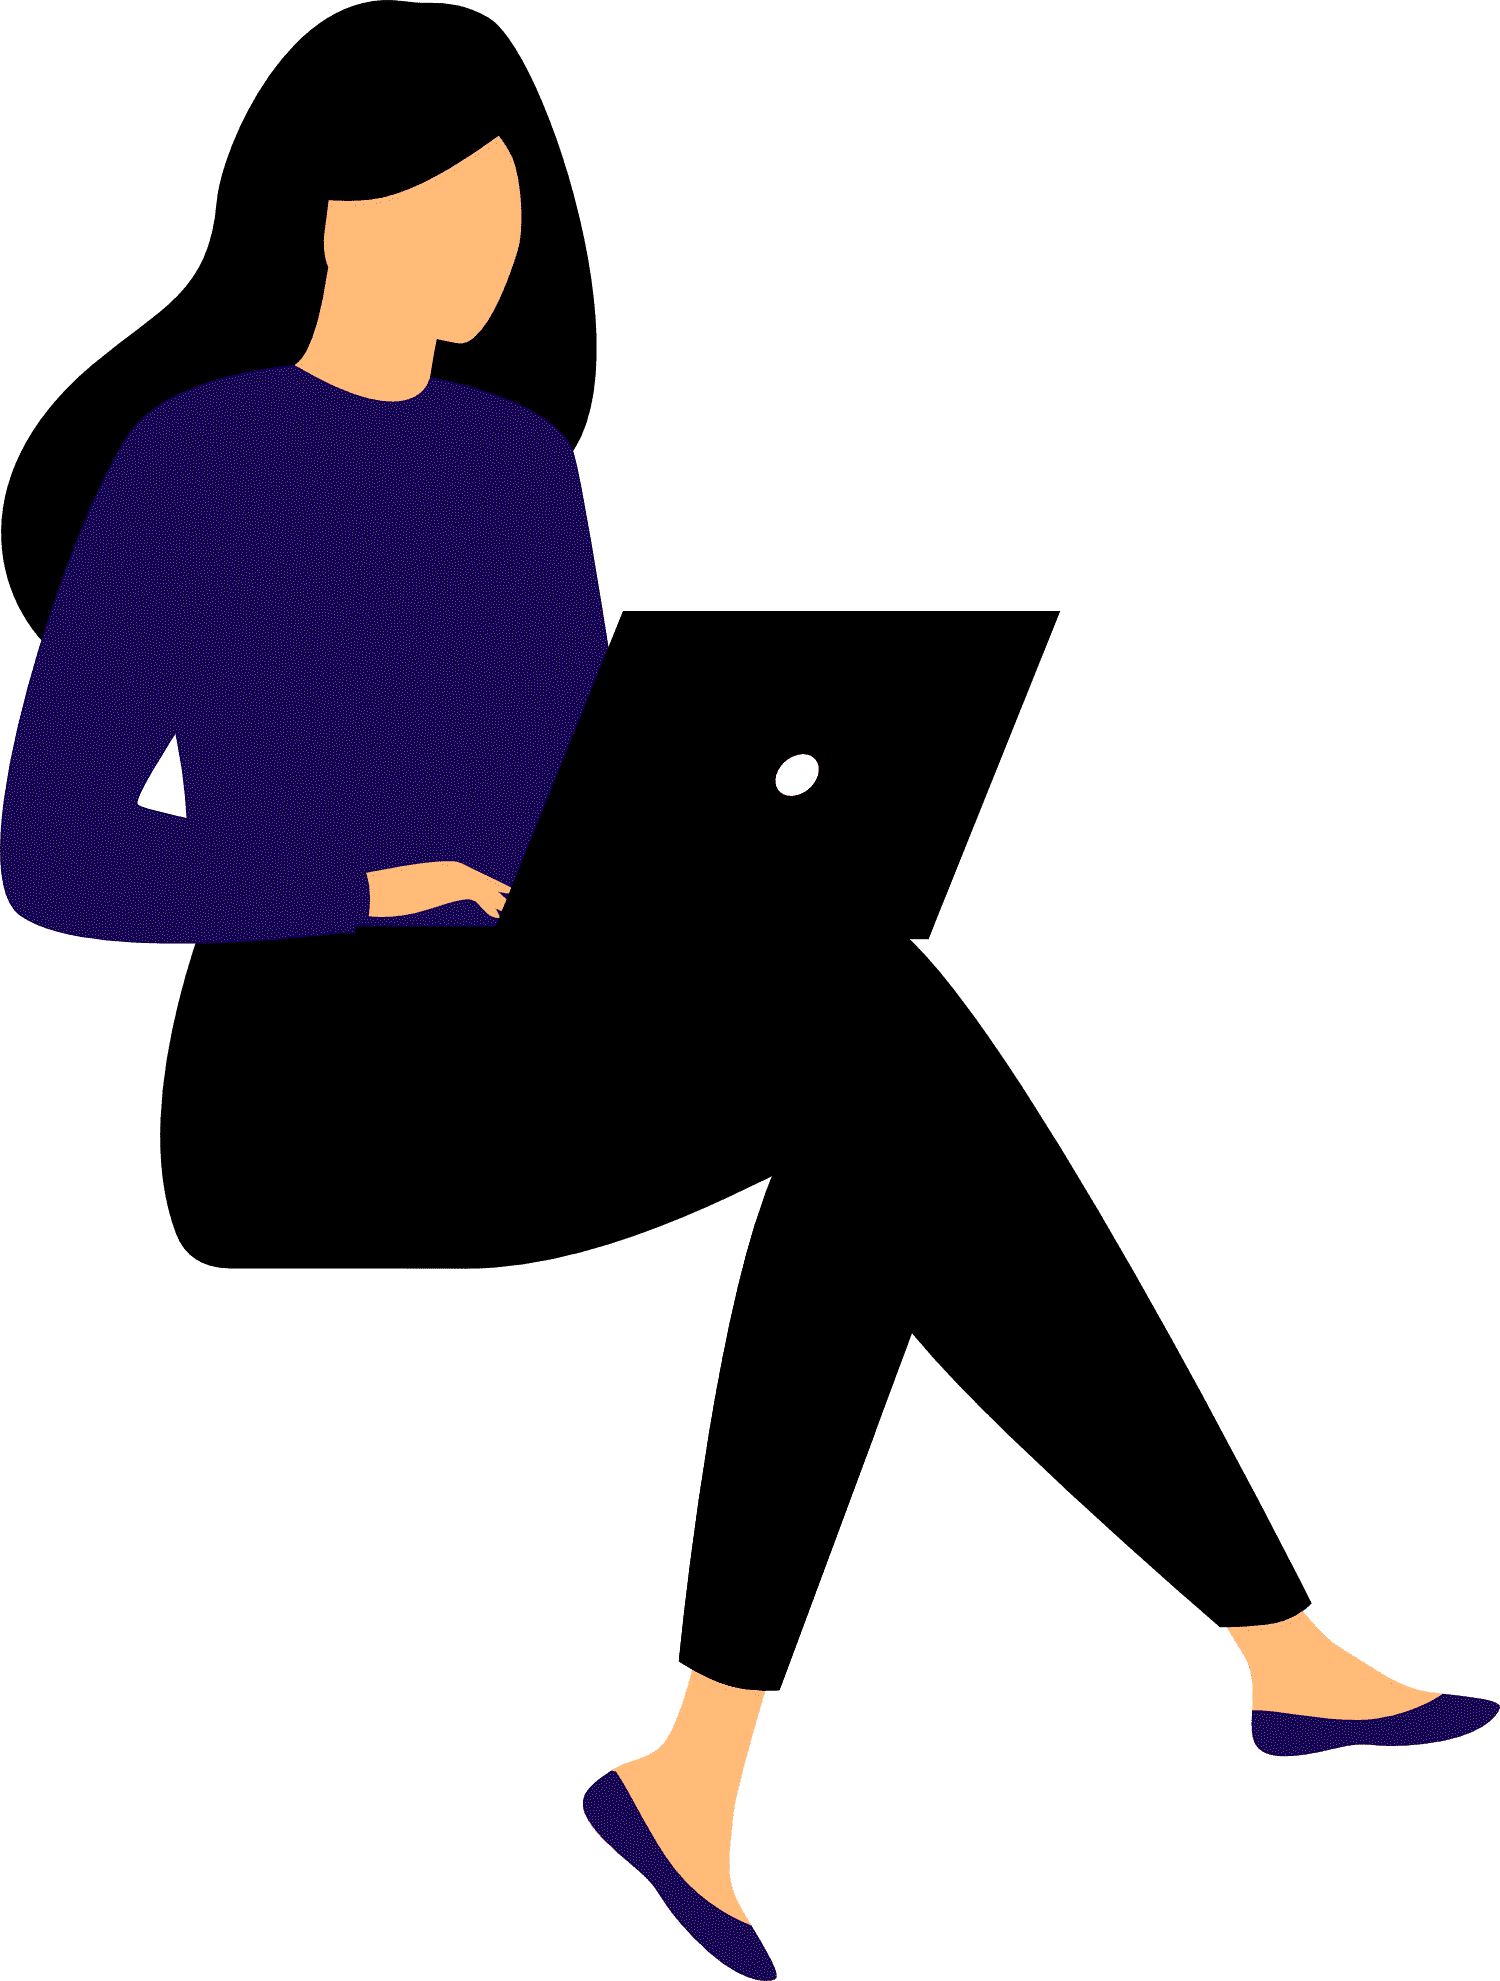 Personal computer, Human body, Laptop, Sleeve, Gesture, Font